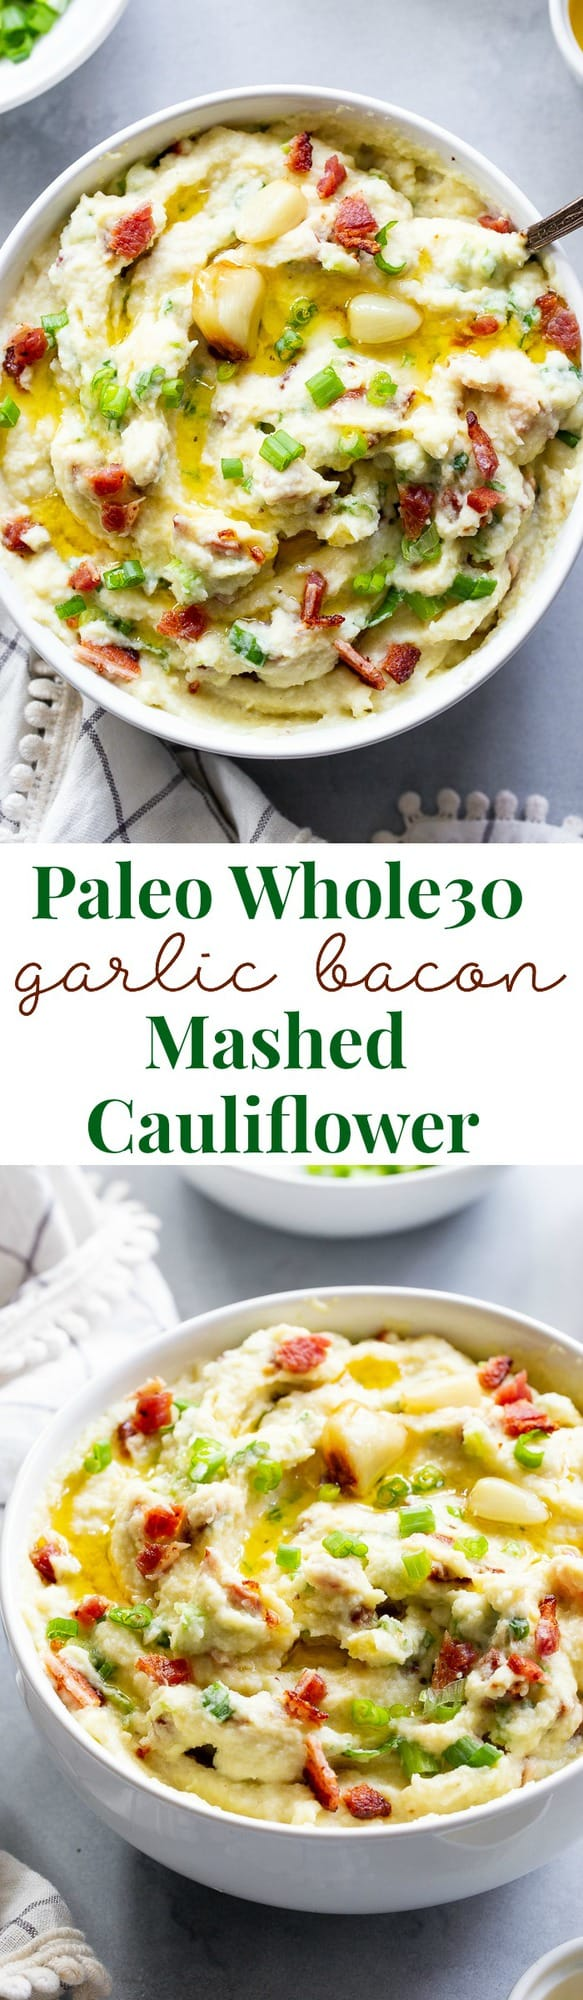 This creamy mashed cauliflower is packed with goodies like roasted garlic, crispy bacon and scallions. It tastes just like loaded mashed potatoes, but without the carbs!  Whole30 compliant, paleo, keto, and dairy-free.